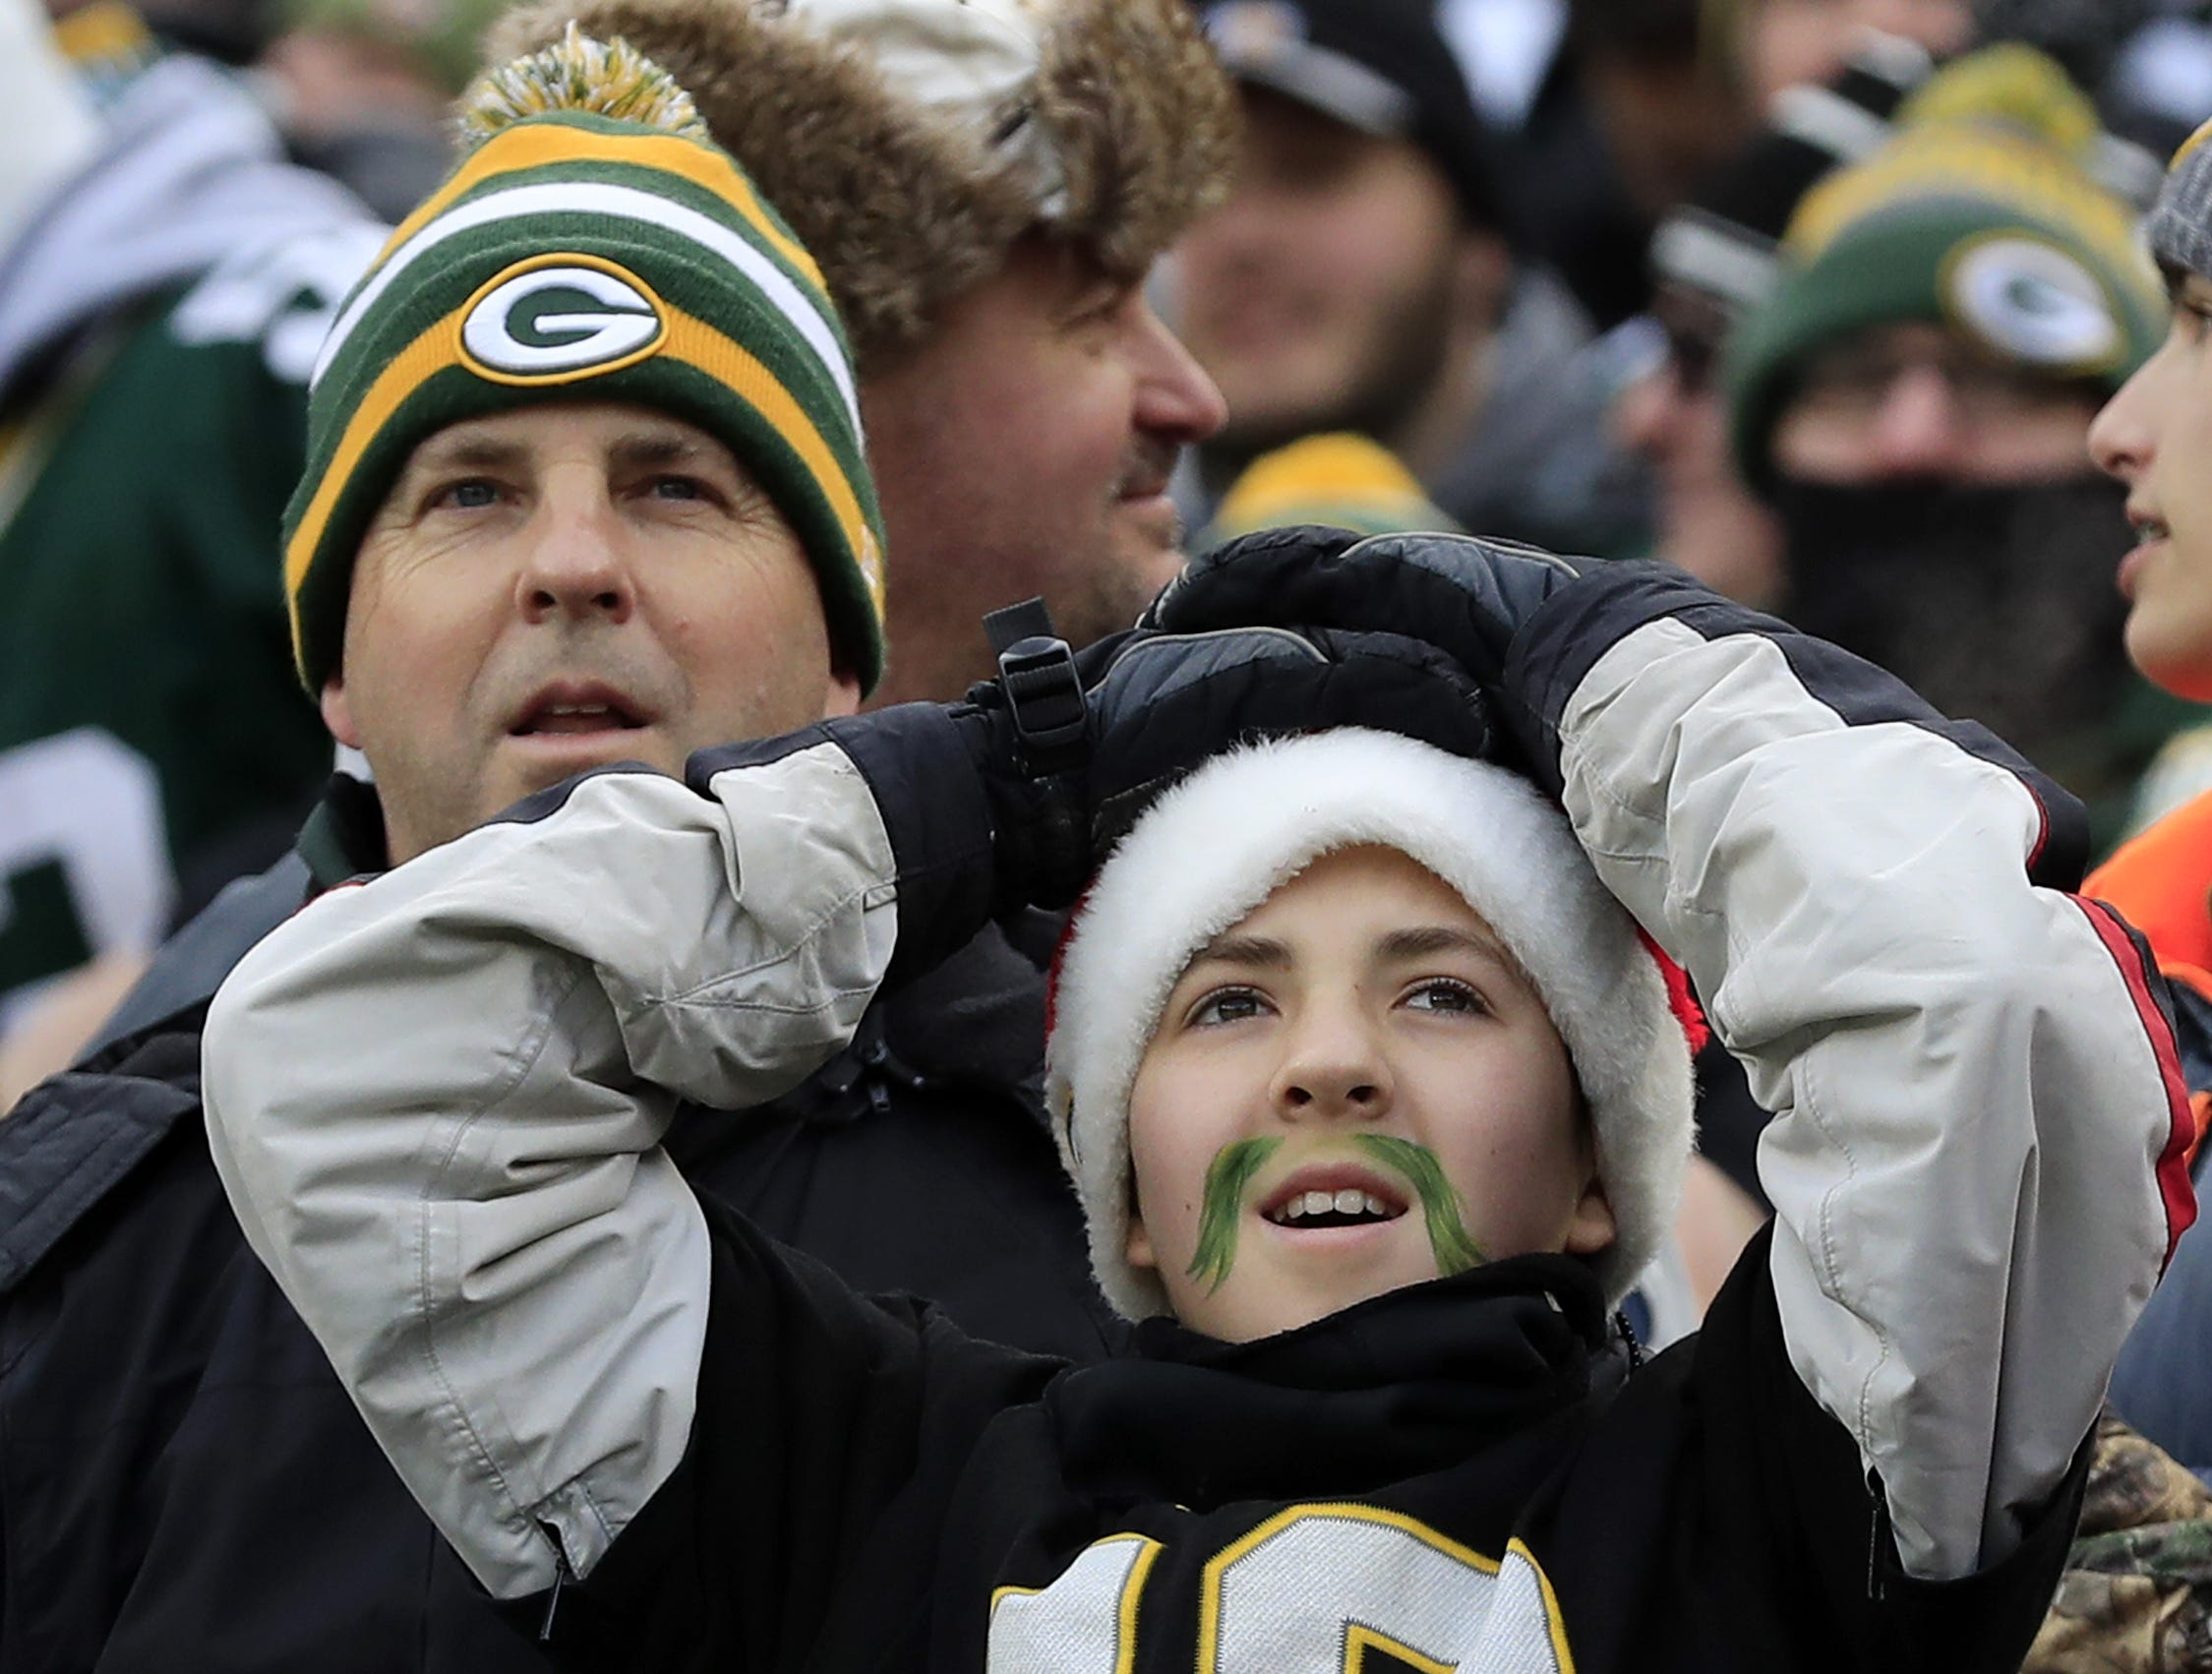 A Packers fan reacts after a turnover on downs against the Detroit Lions in the fourth quarter at Lambeau Field on Sunday, December 30, 2018 in Green Bay, Wis. Adam Wesley/USA TODAY NETWORK-Wis